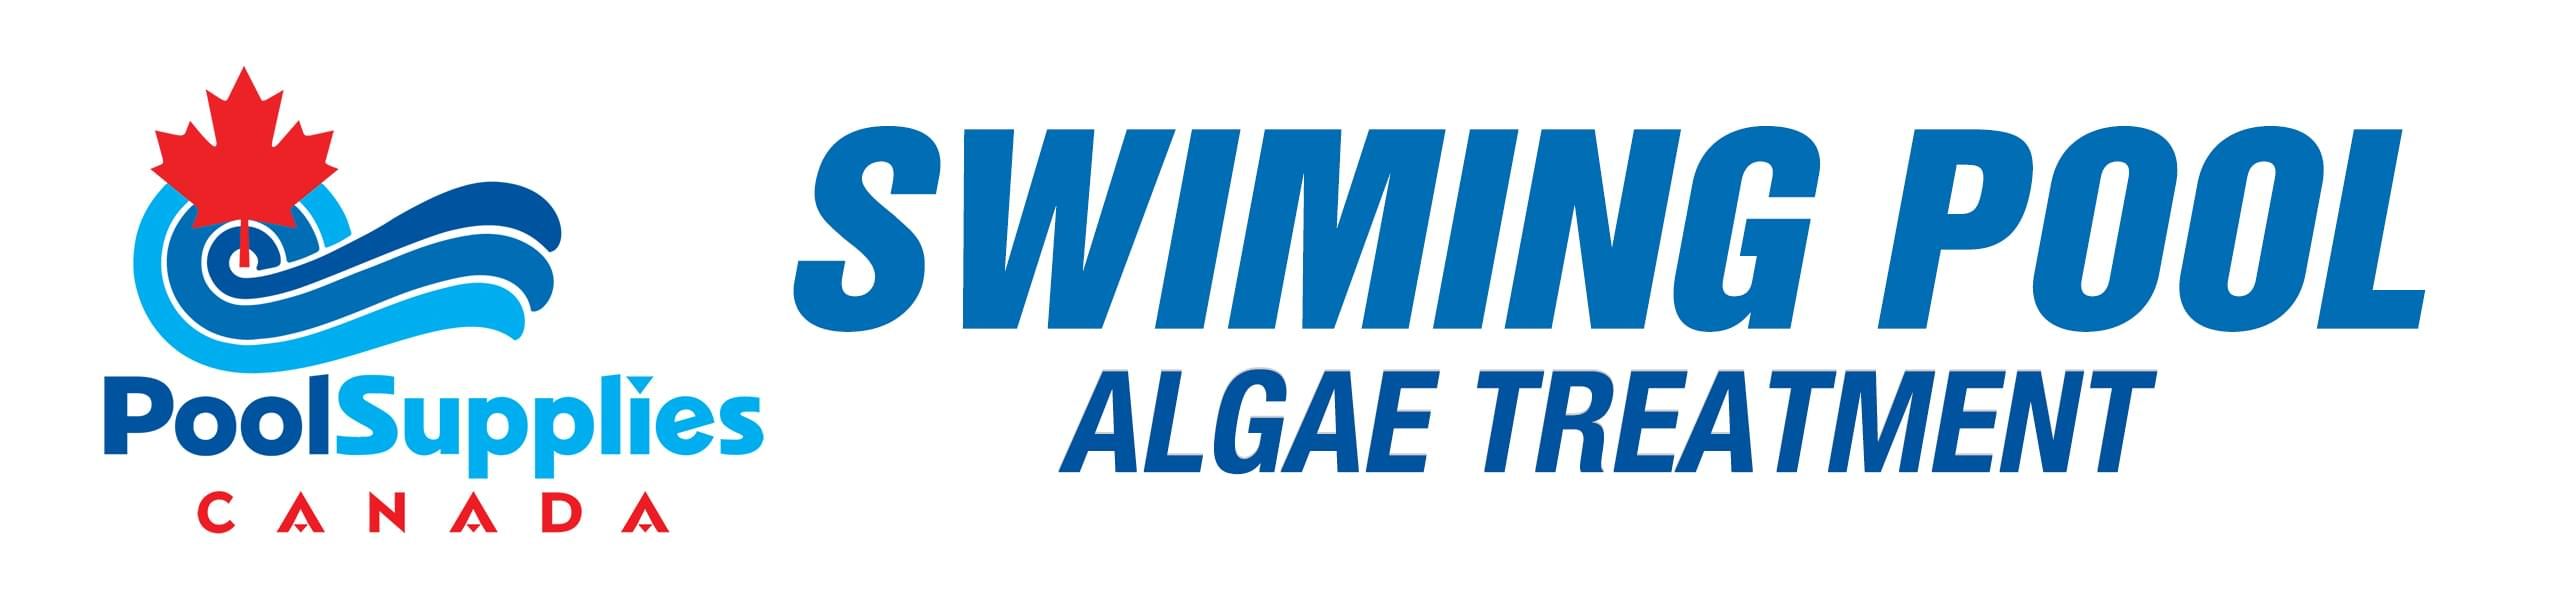 Swimming pool algae treatment pool supplies canada Swimming pool algae treatment